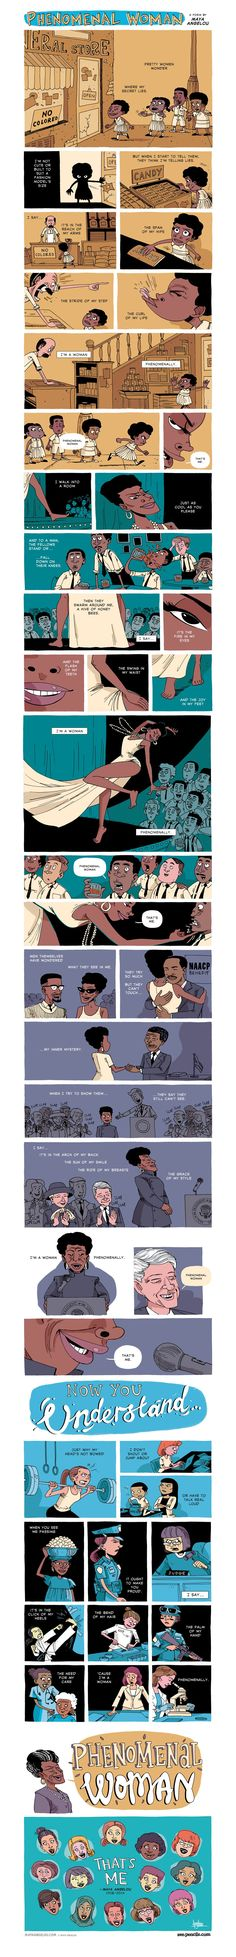 phenomenal woman - cute comic of the maya angelou poem